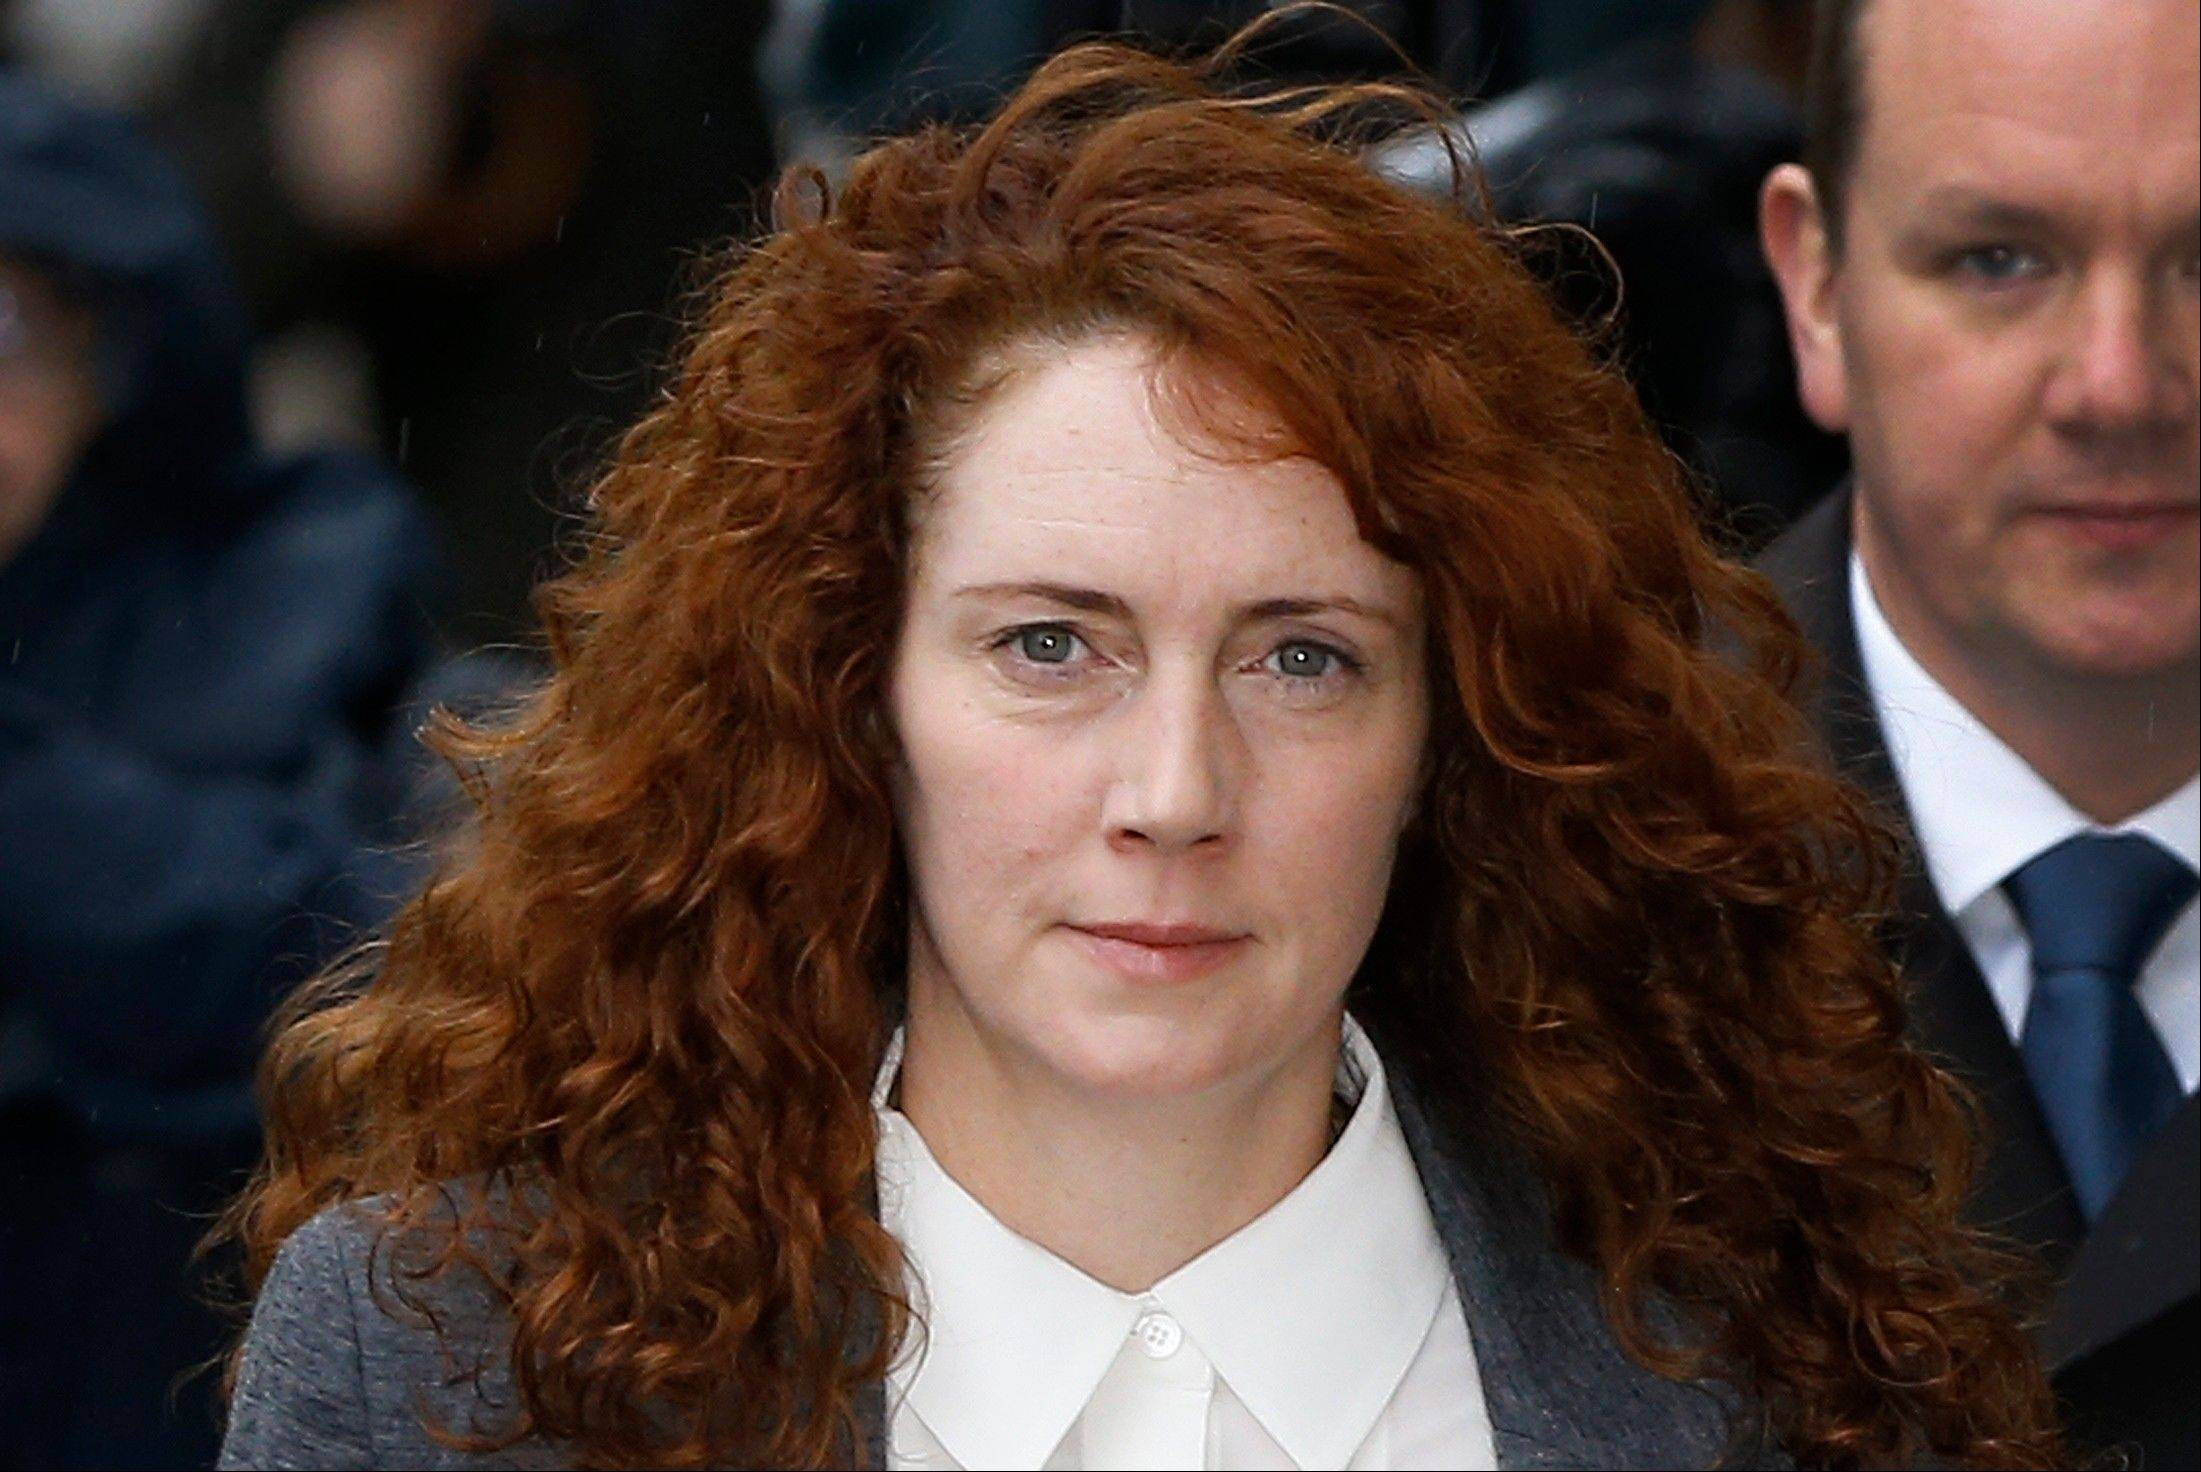 Rebekah Brooks arrives at The Old Bailey law court in London, Thursday, Oct. 31, 2013. Former News of the World national newspaper editors Rebekah Brooks and Andy Coulson are due to go on trial Monday on charges relating to the hacking of phones and bribing officials while at the now closed tabloid paper.